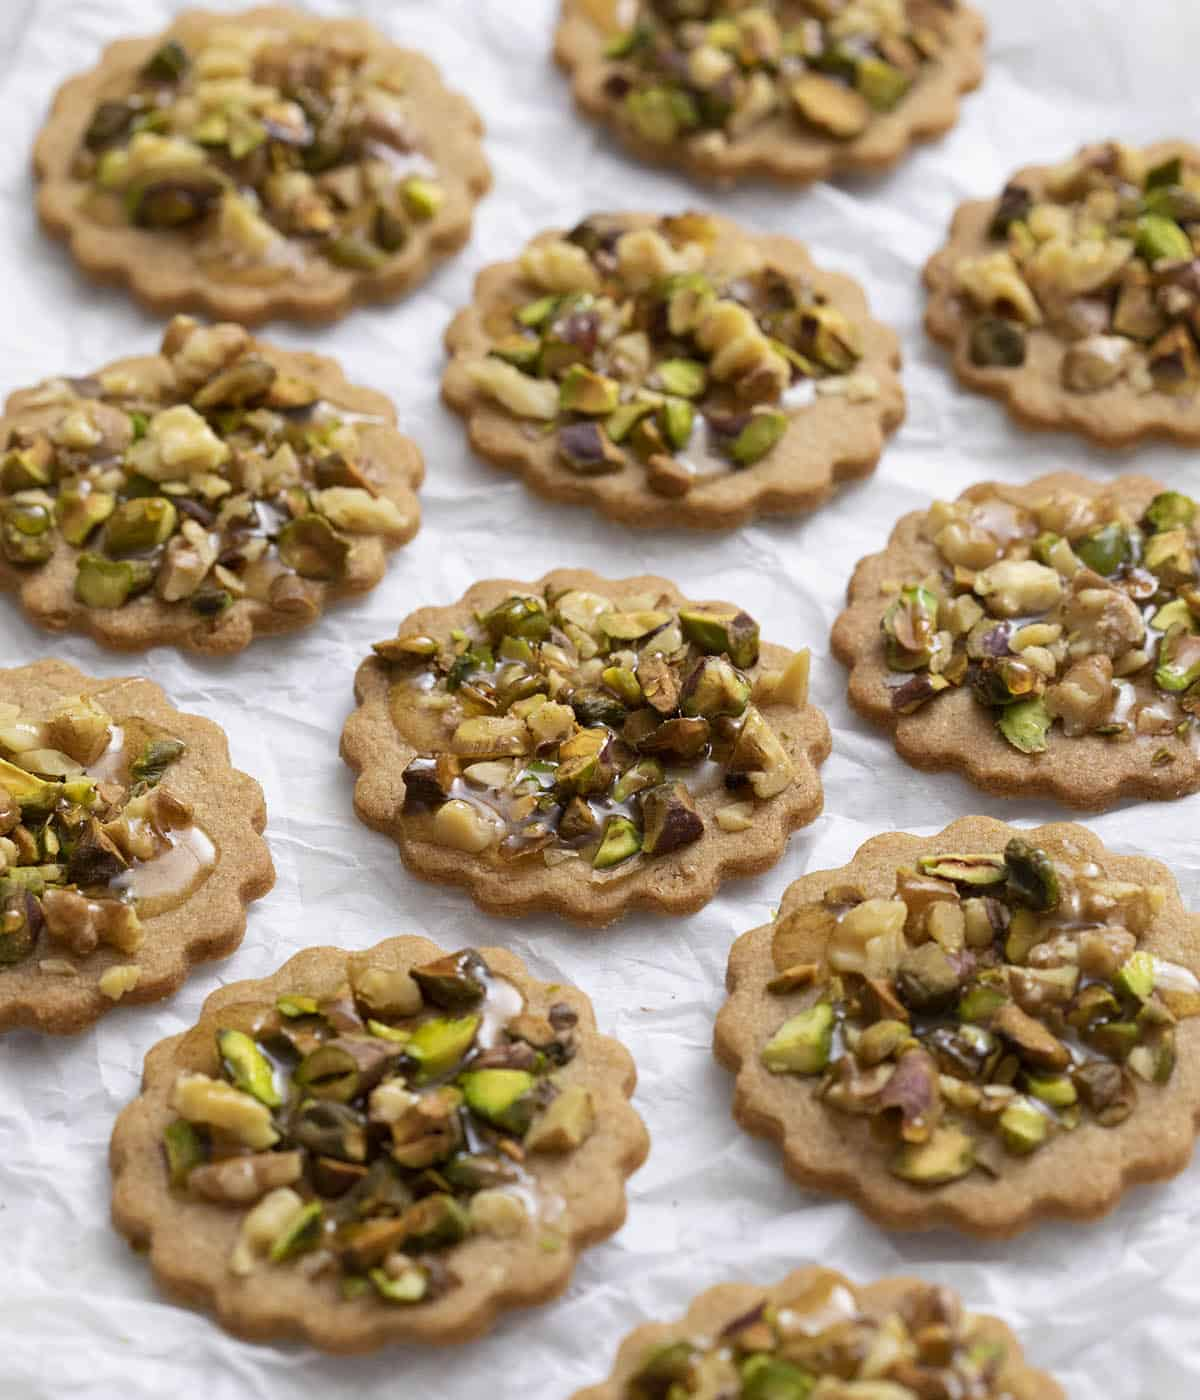 A group of baklava cookies on parchment paper.